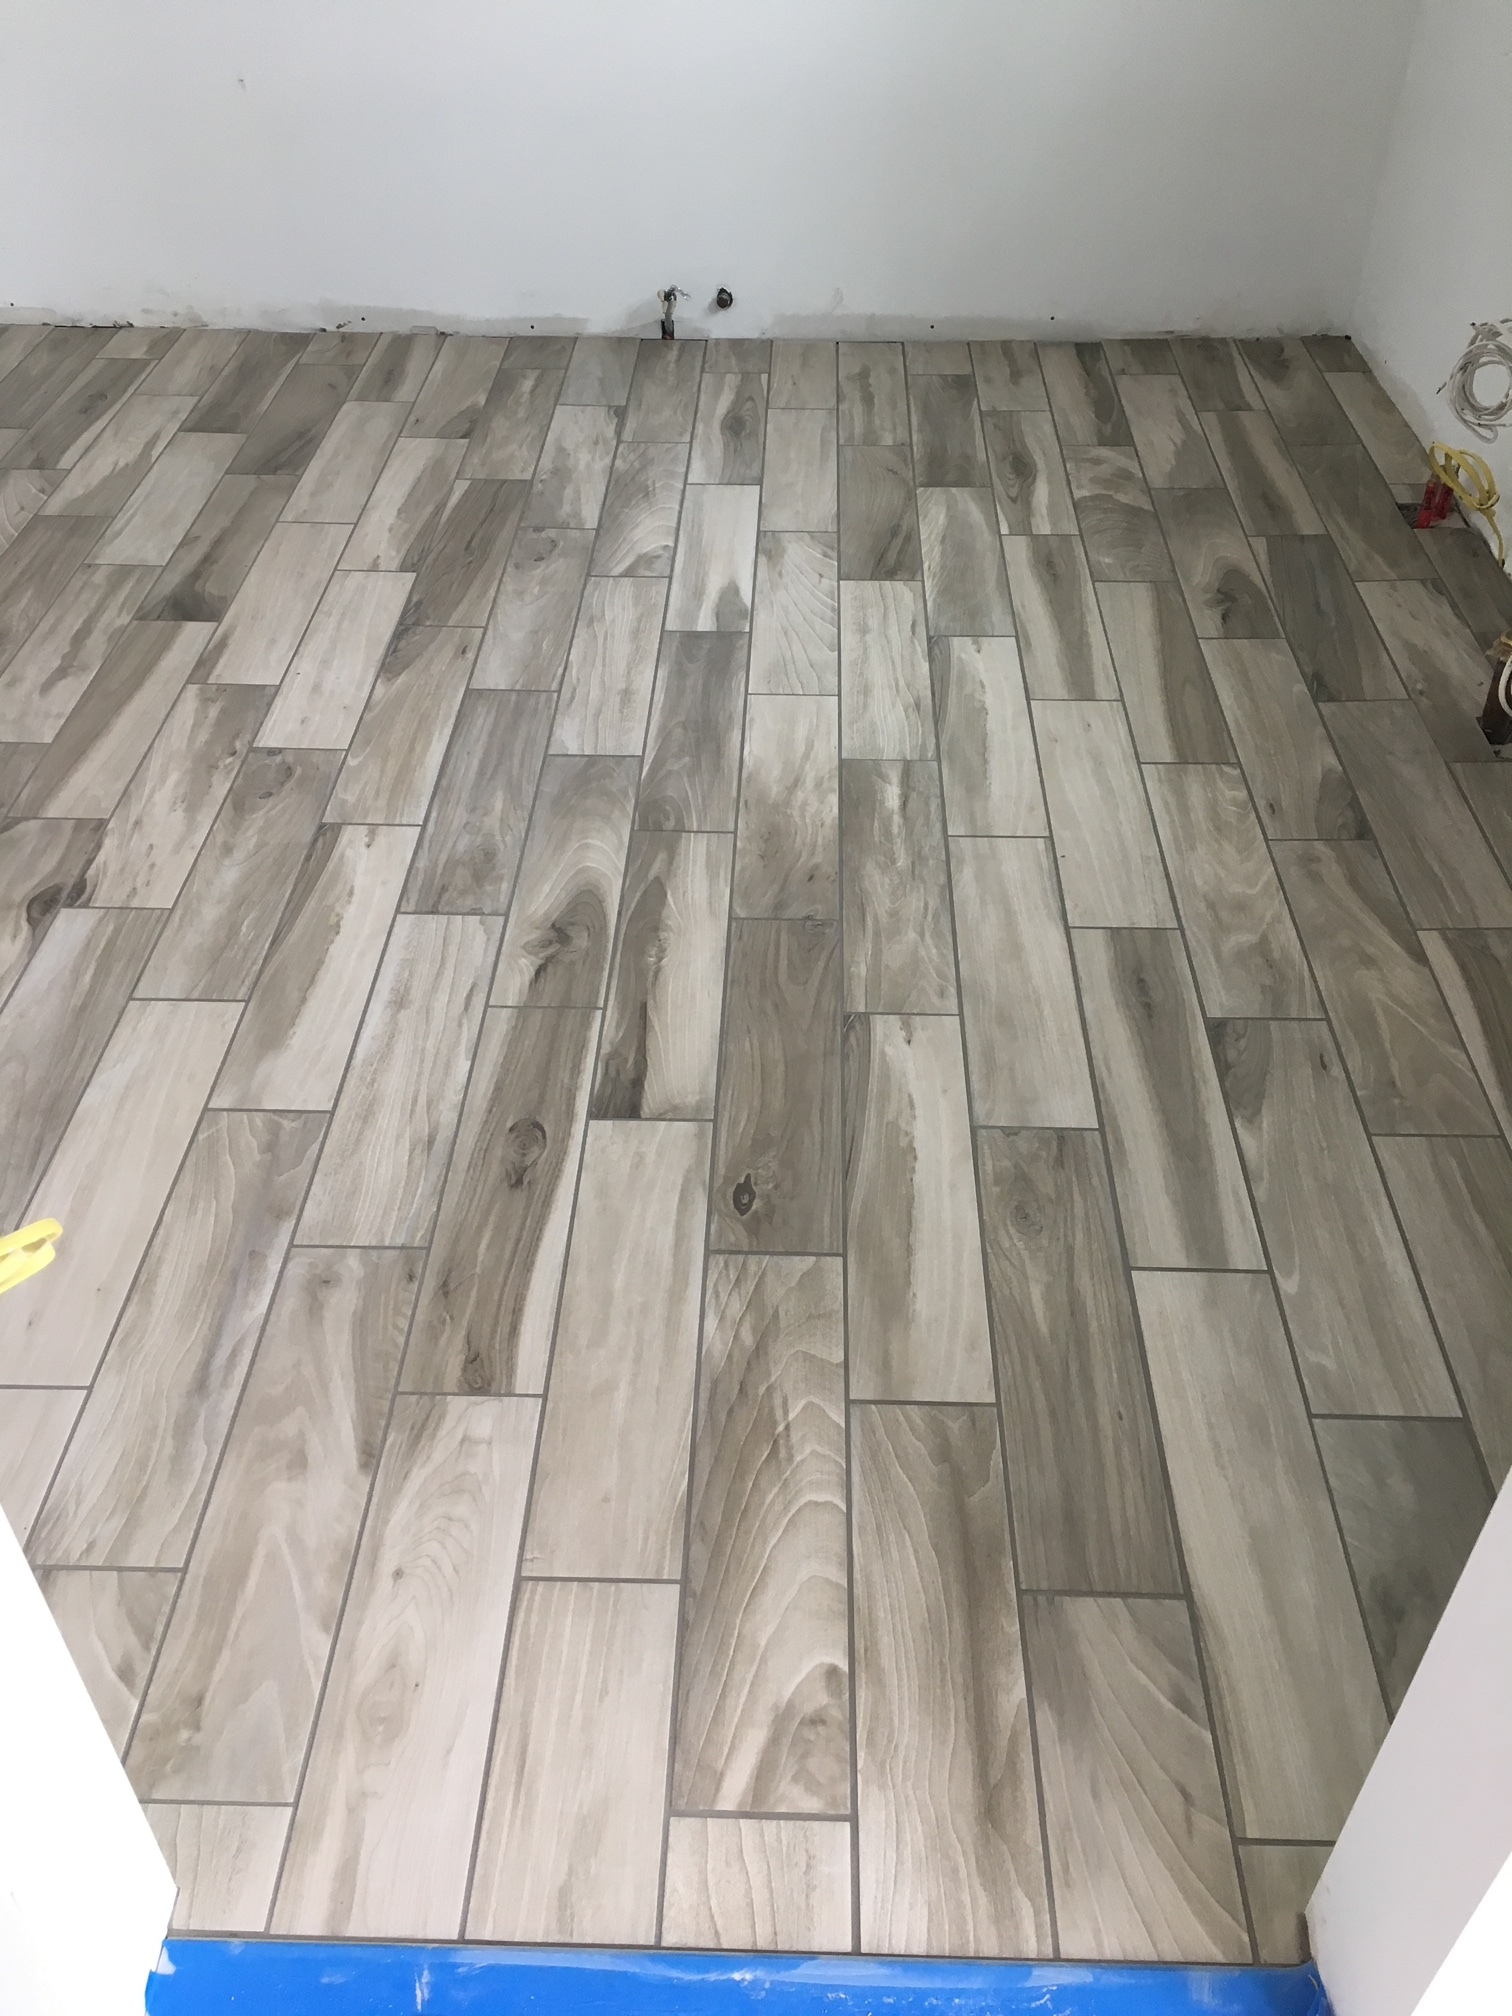 long port kitchen install and tile floor